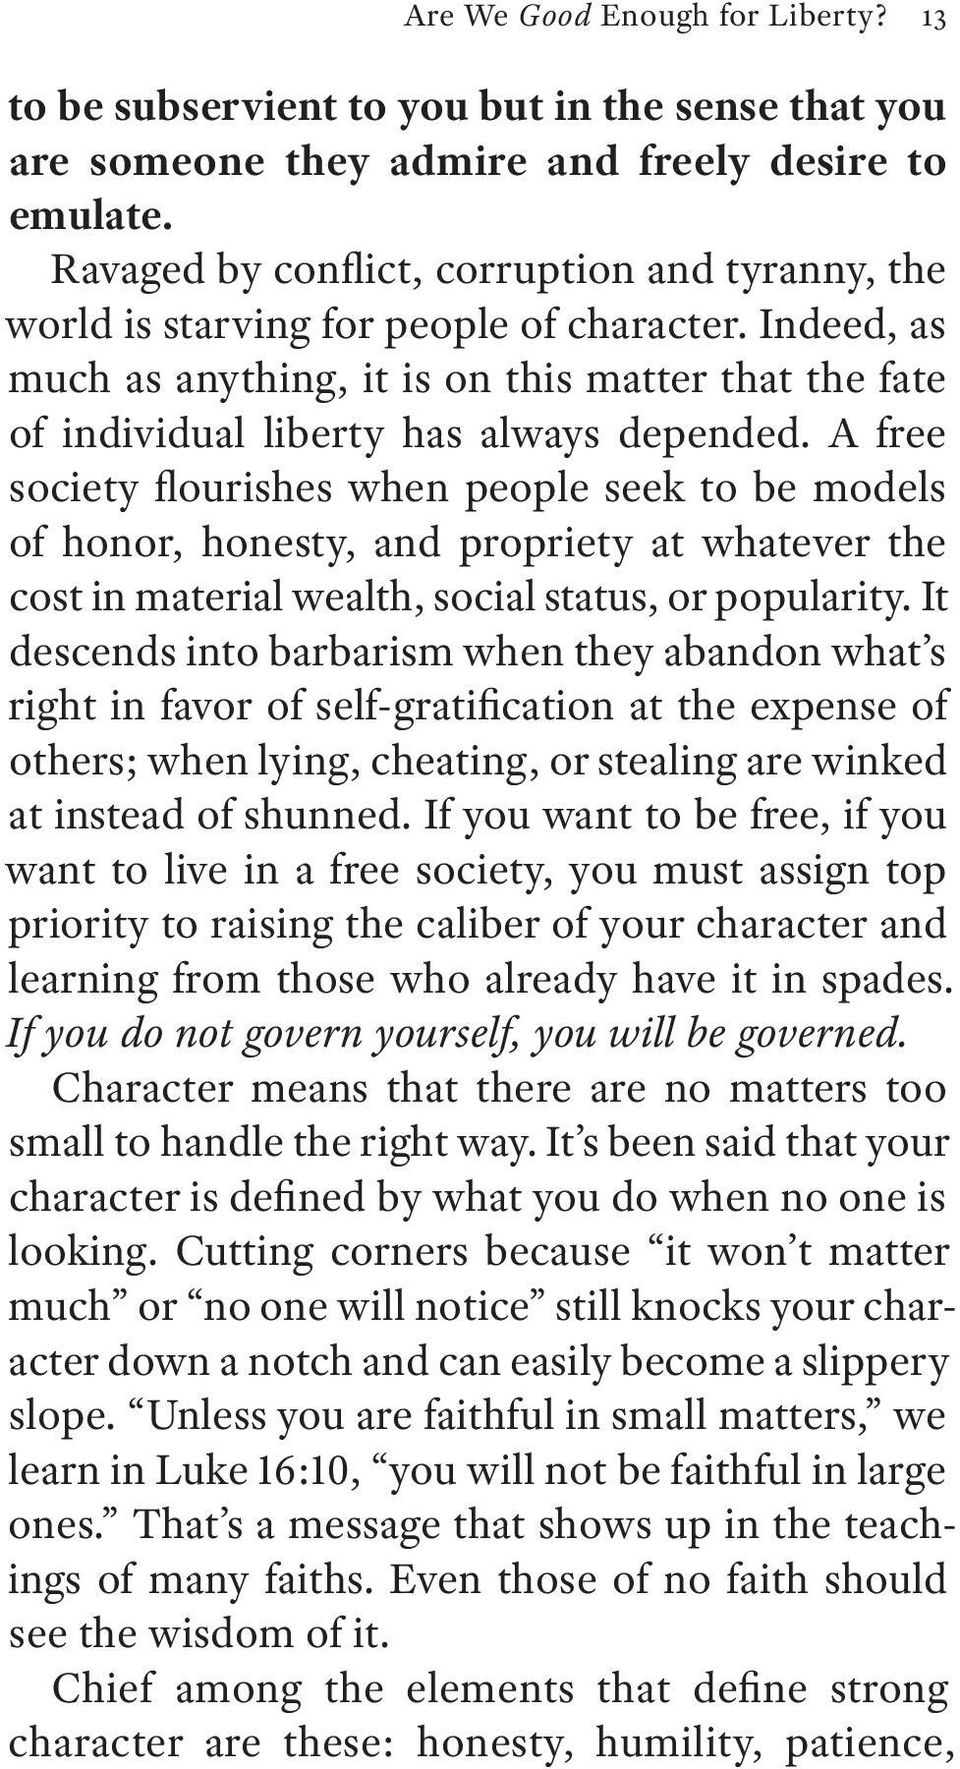 A free society flourishes when people seek to be models of honor, honesty, and propriety at whatever the cost in material wealth, social status, or popularity.